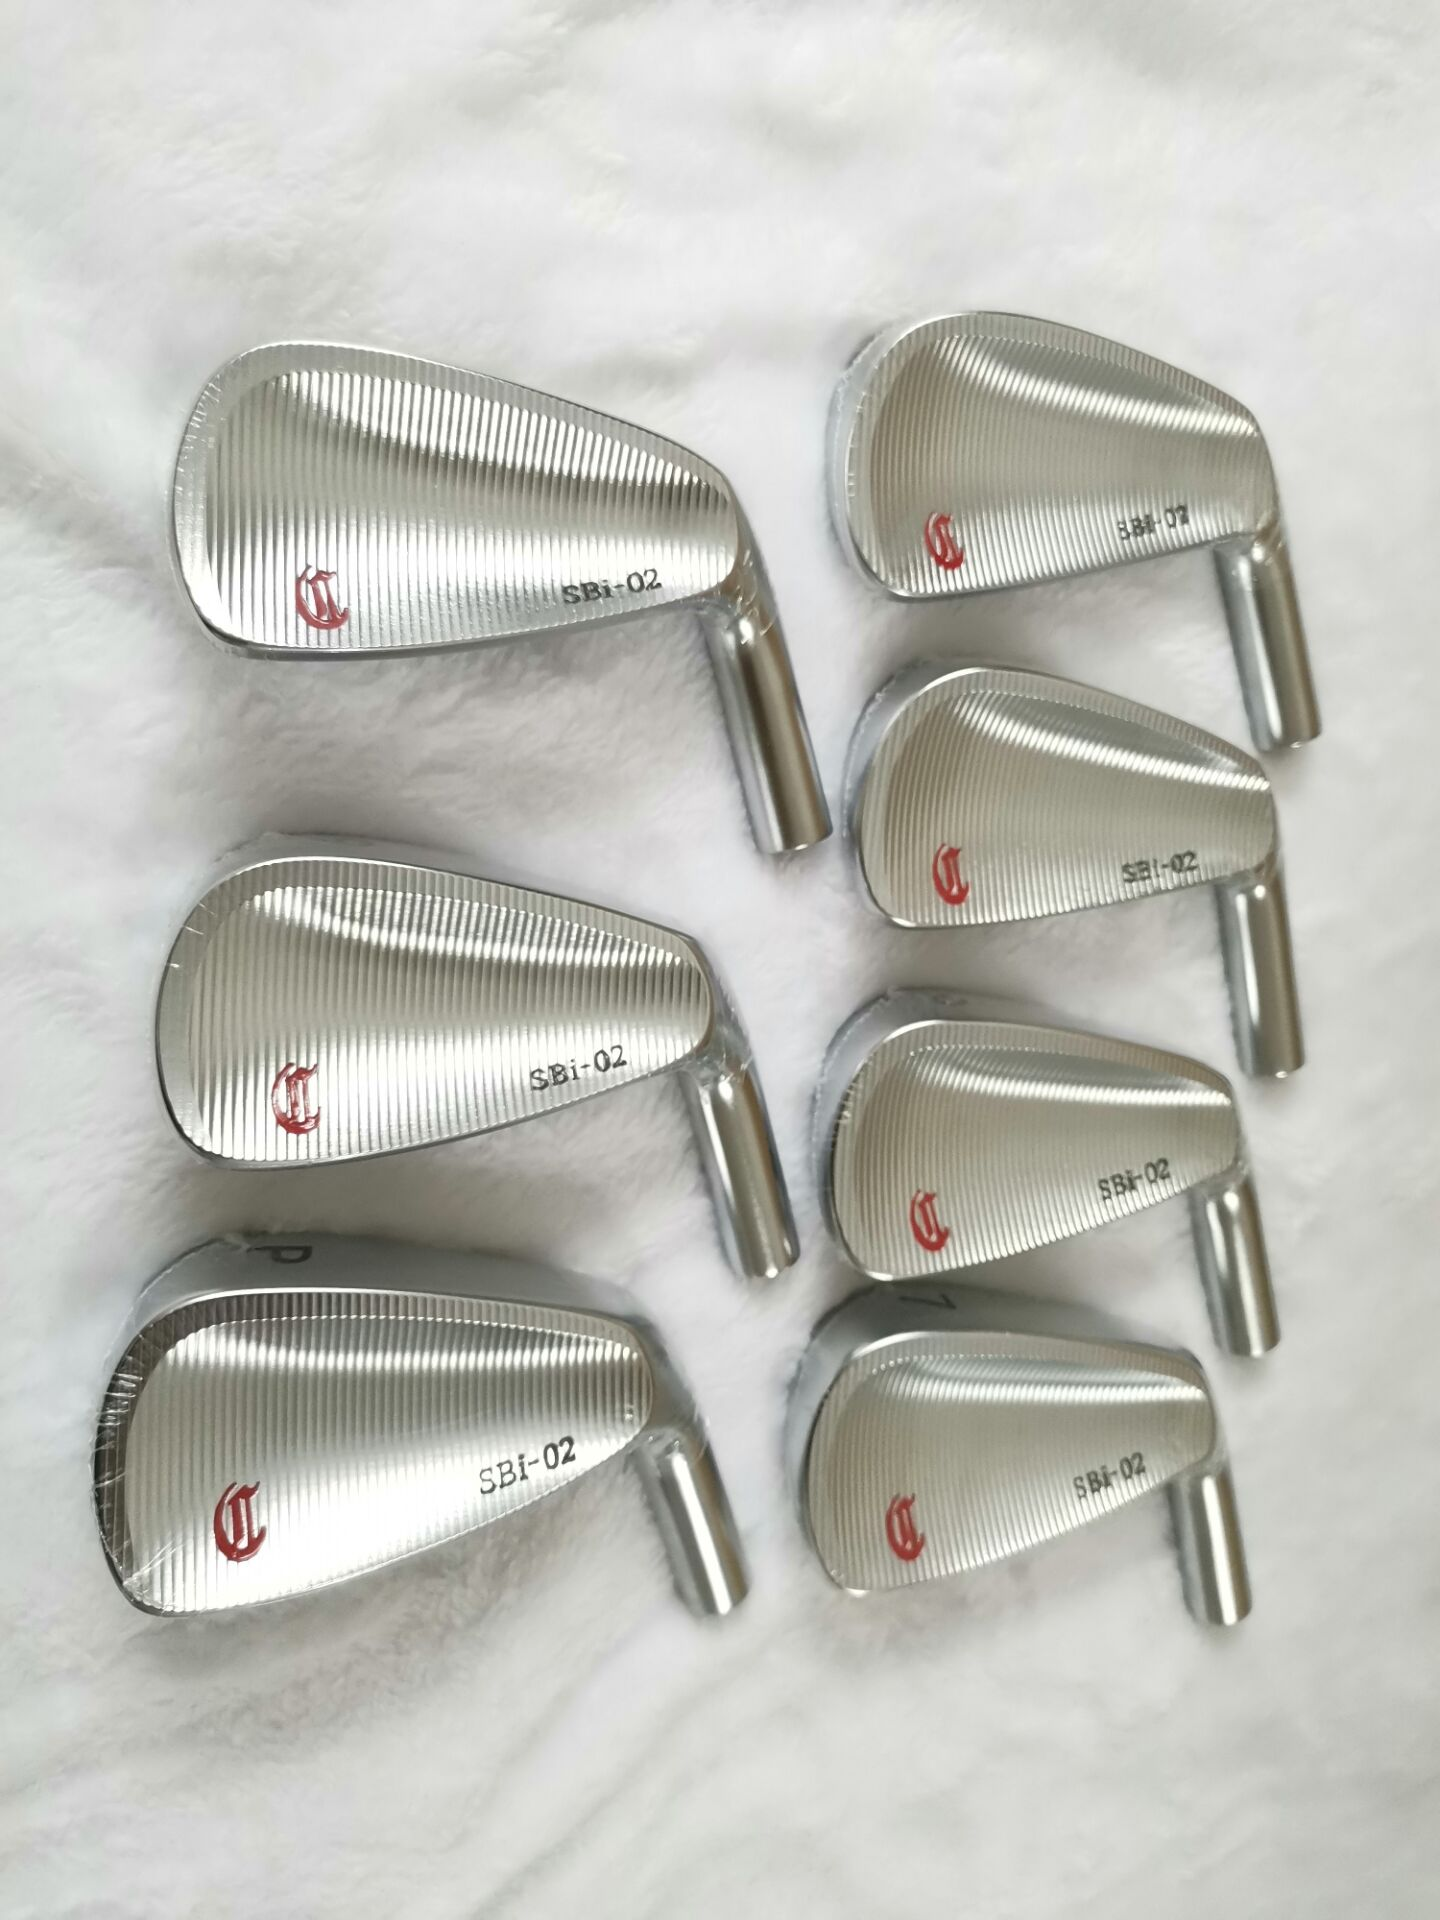 CRAZY SBi-02 Iron Set Silver CRAZY Golf Forged Irons CRAZY Golf Clubs 4-9P Steel/Graphite Shaft